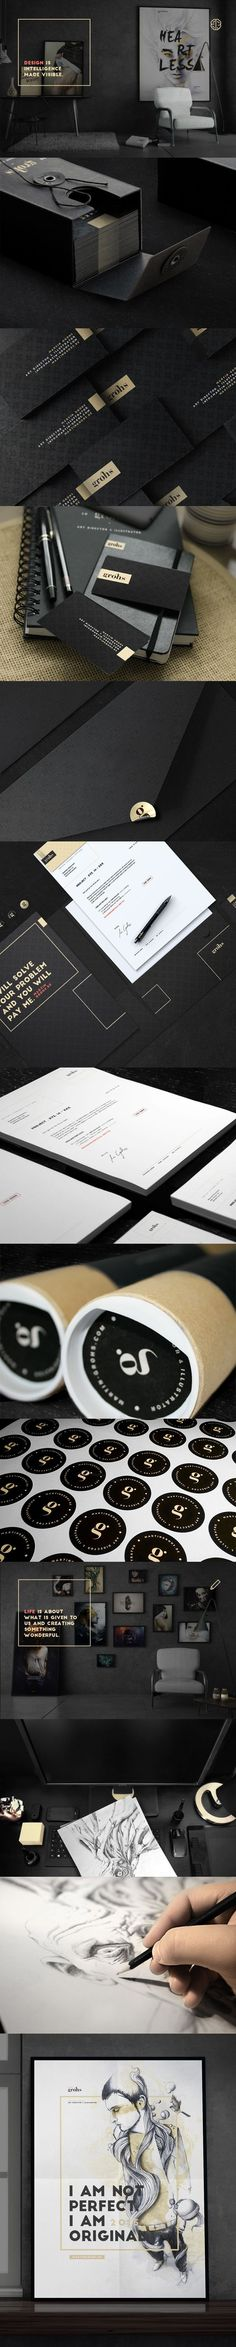 Unique branding design  in black, white and gold. Martin Grohs.